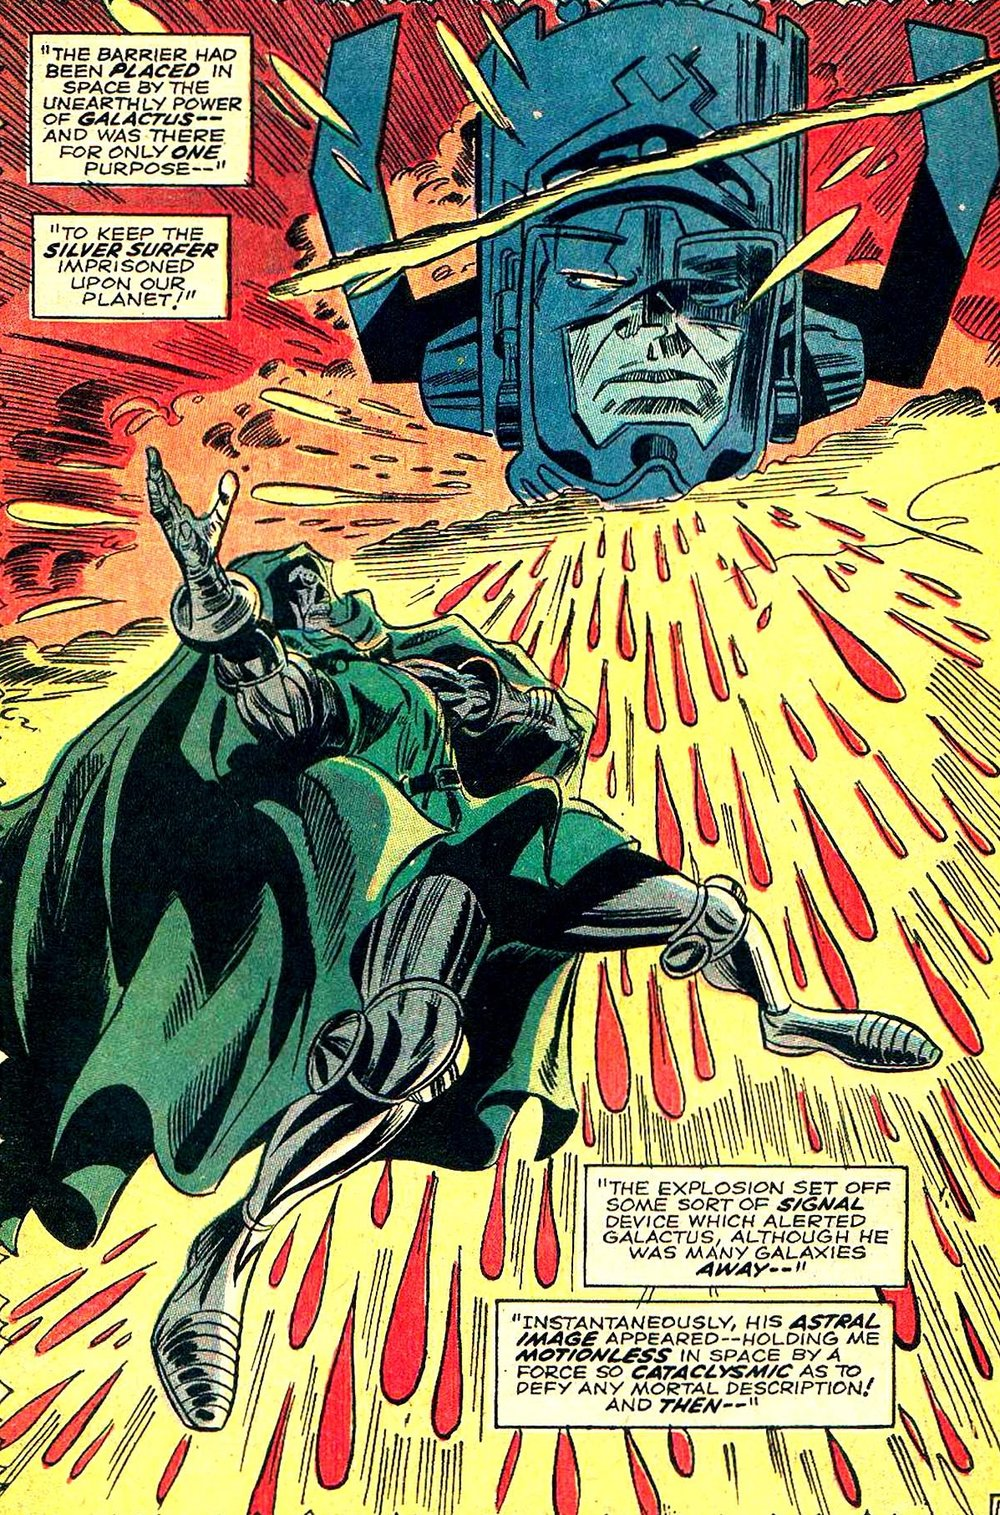 Here's the one-page image that we mentioned when talking about issue 57 - art by Gene Colan and John Tartaglione